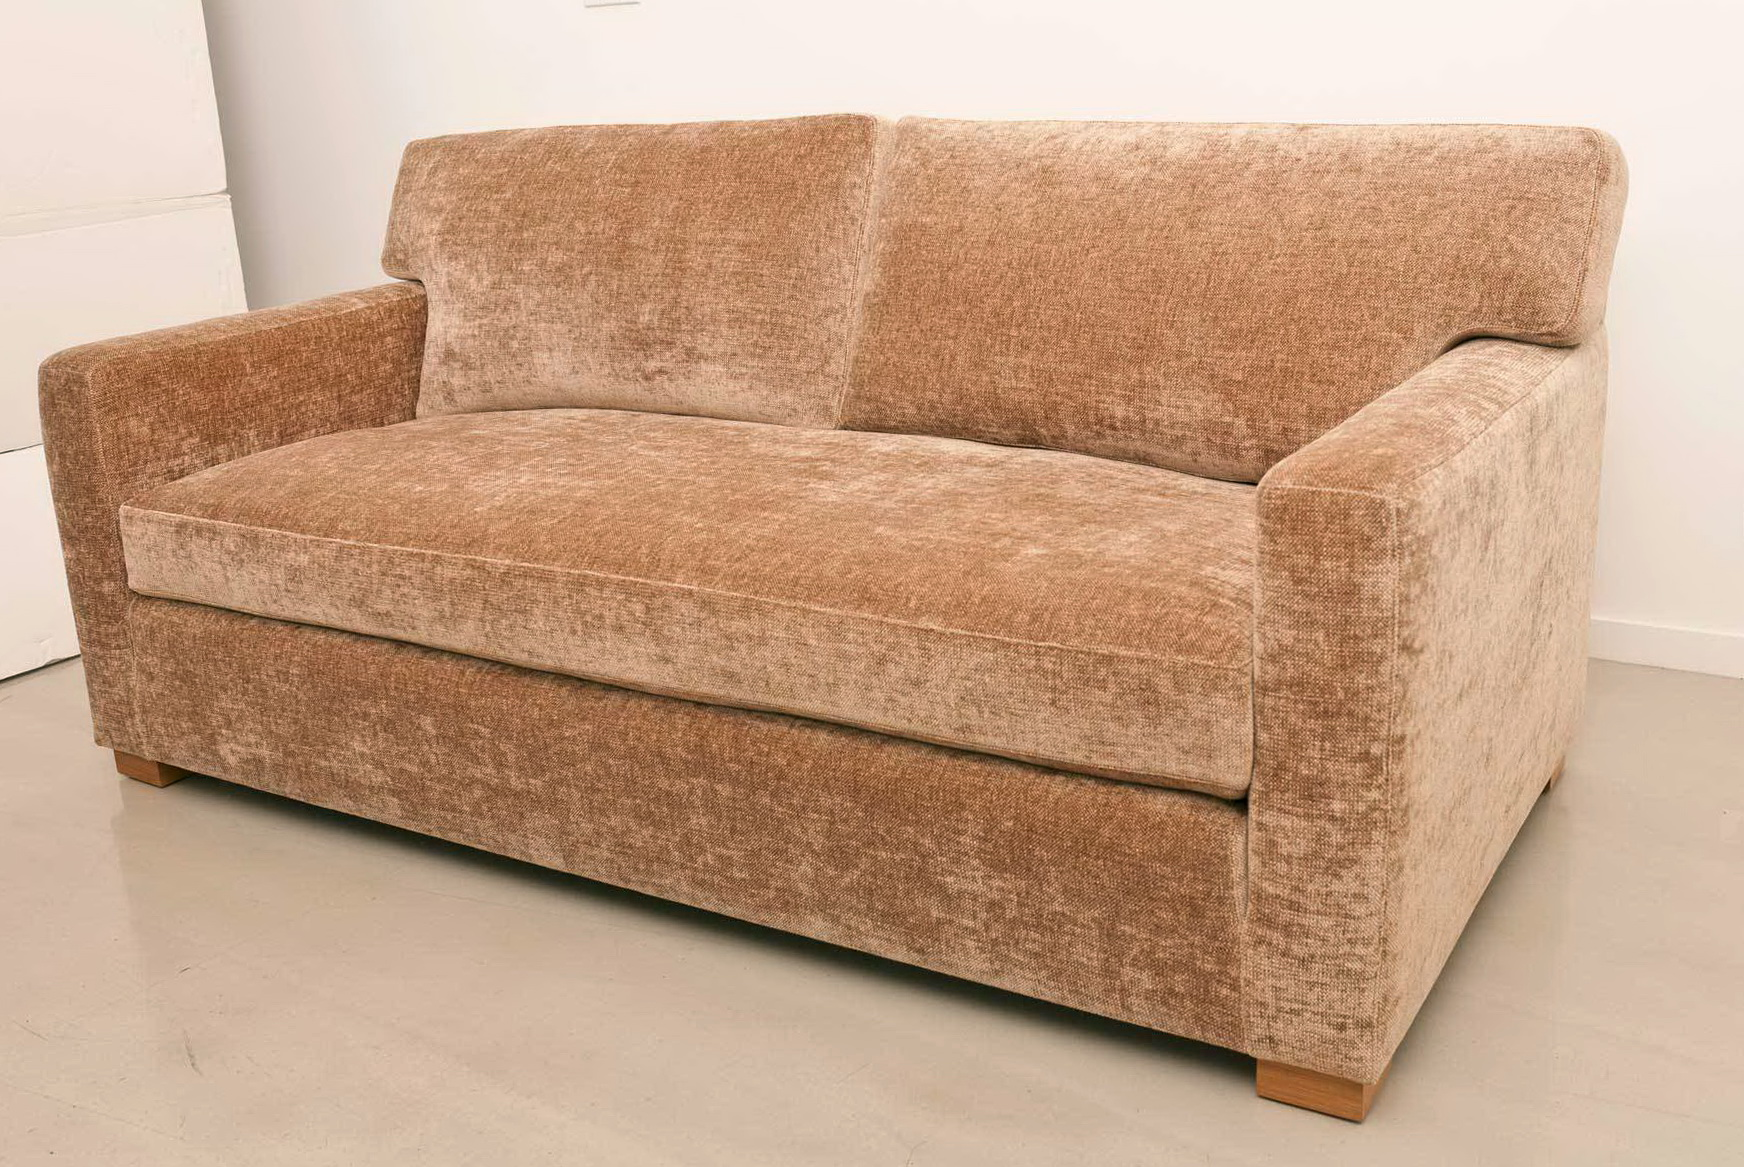 Replacement Cushions For Sofa Bed Home Design Ideas